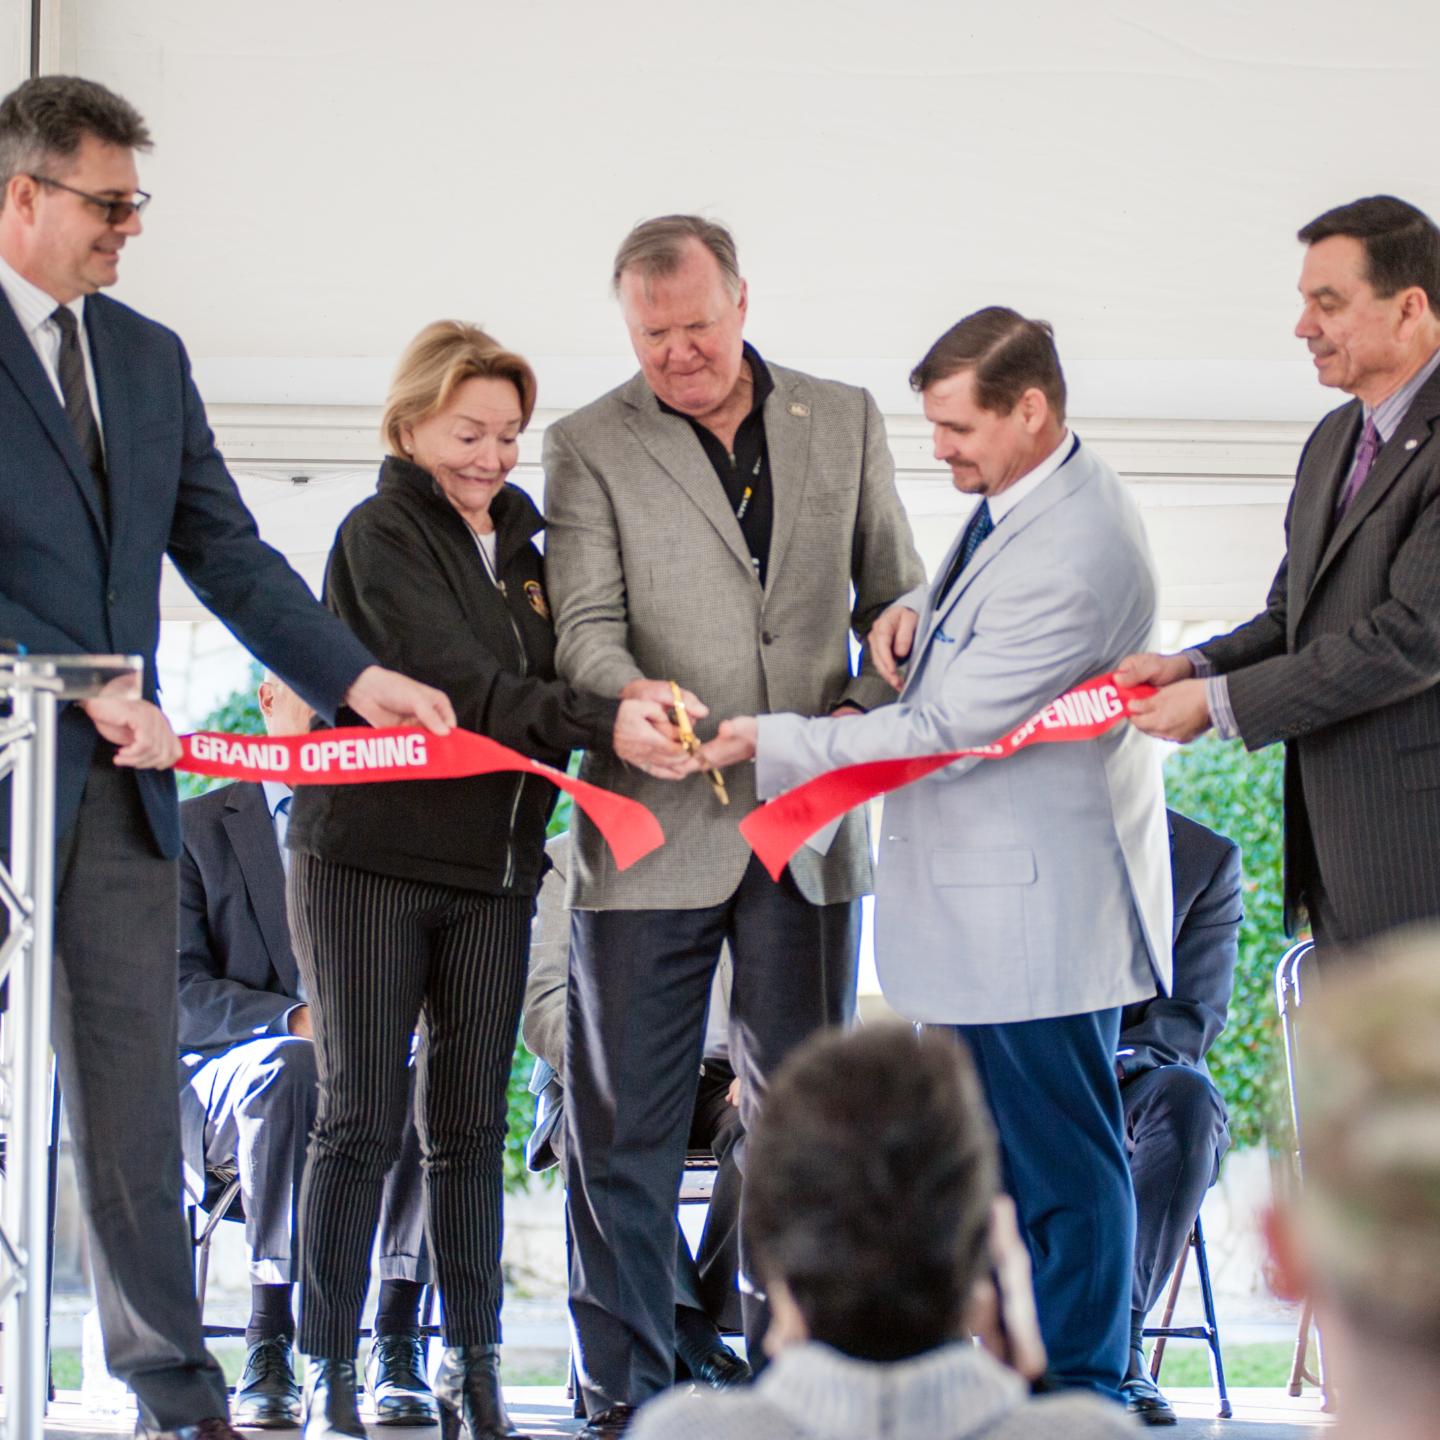 Group of people cutting the red ribbon to open a facility